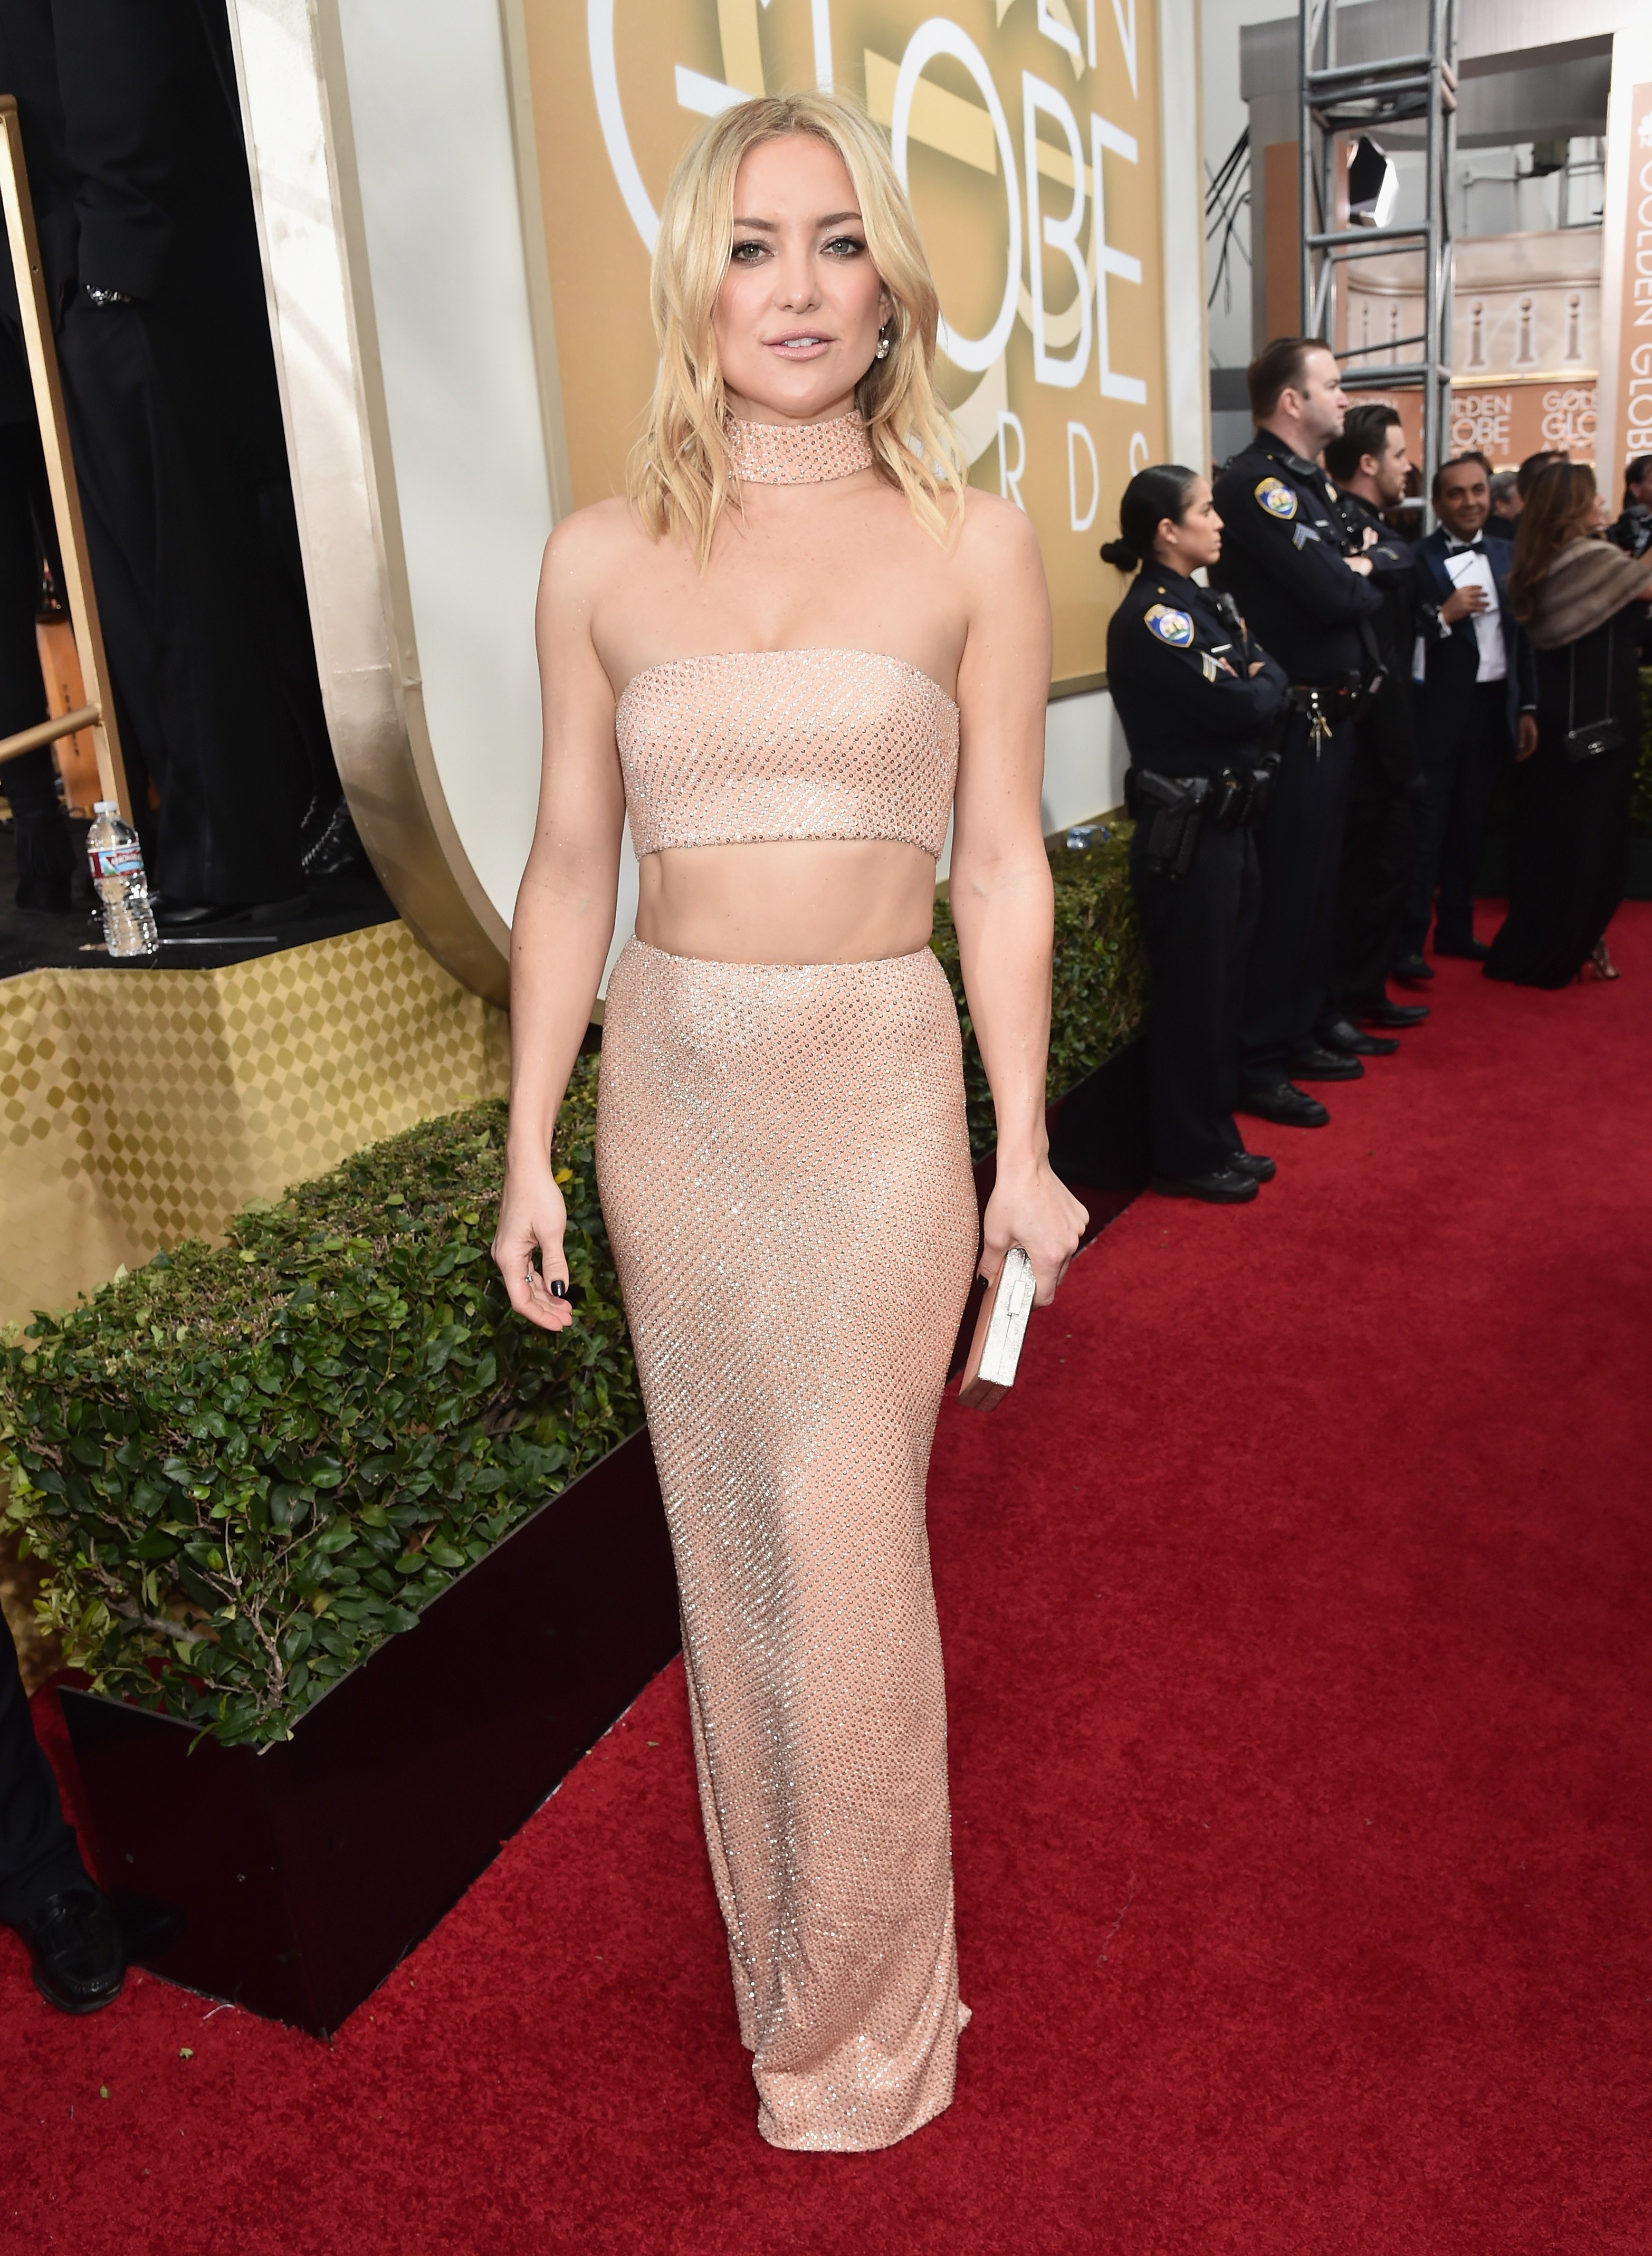 Kate Hudson wore $1.3M worth of diamonds to the Golden Globes